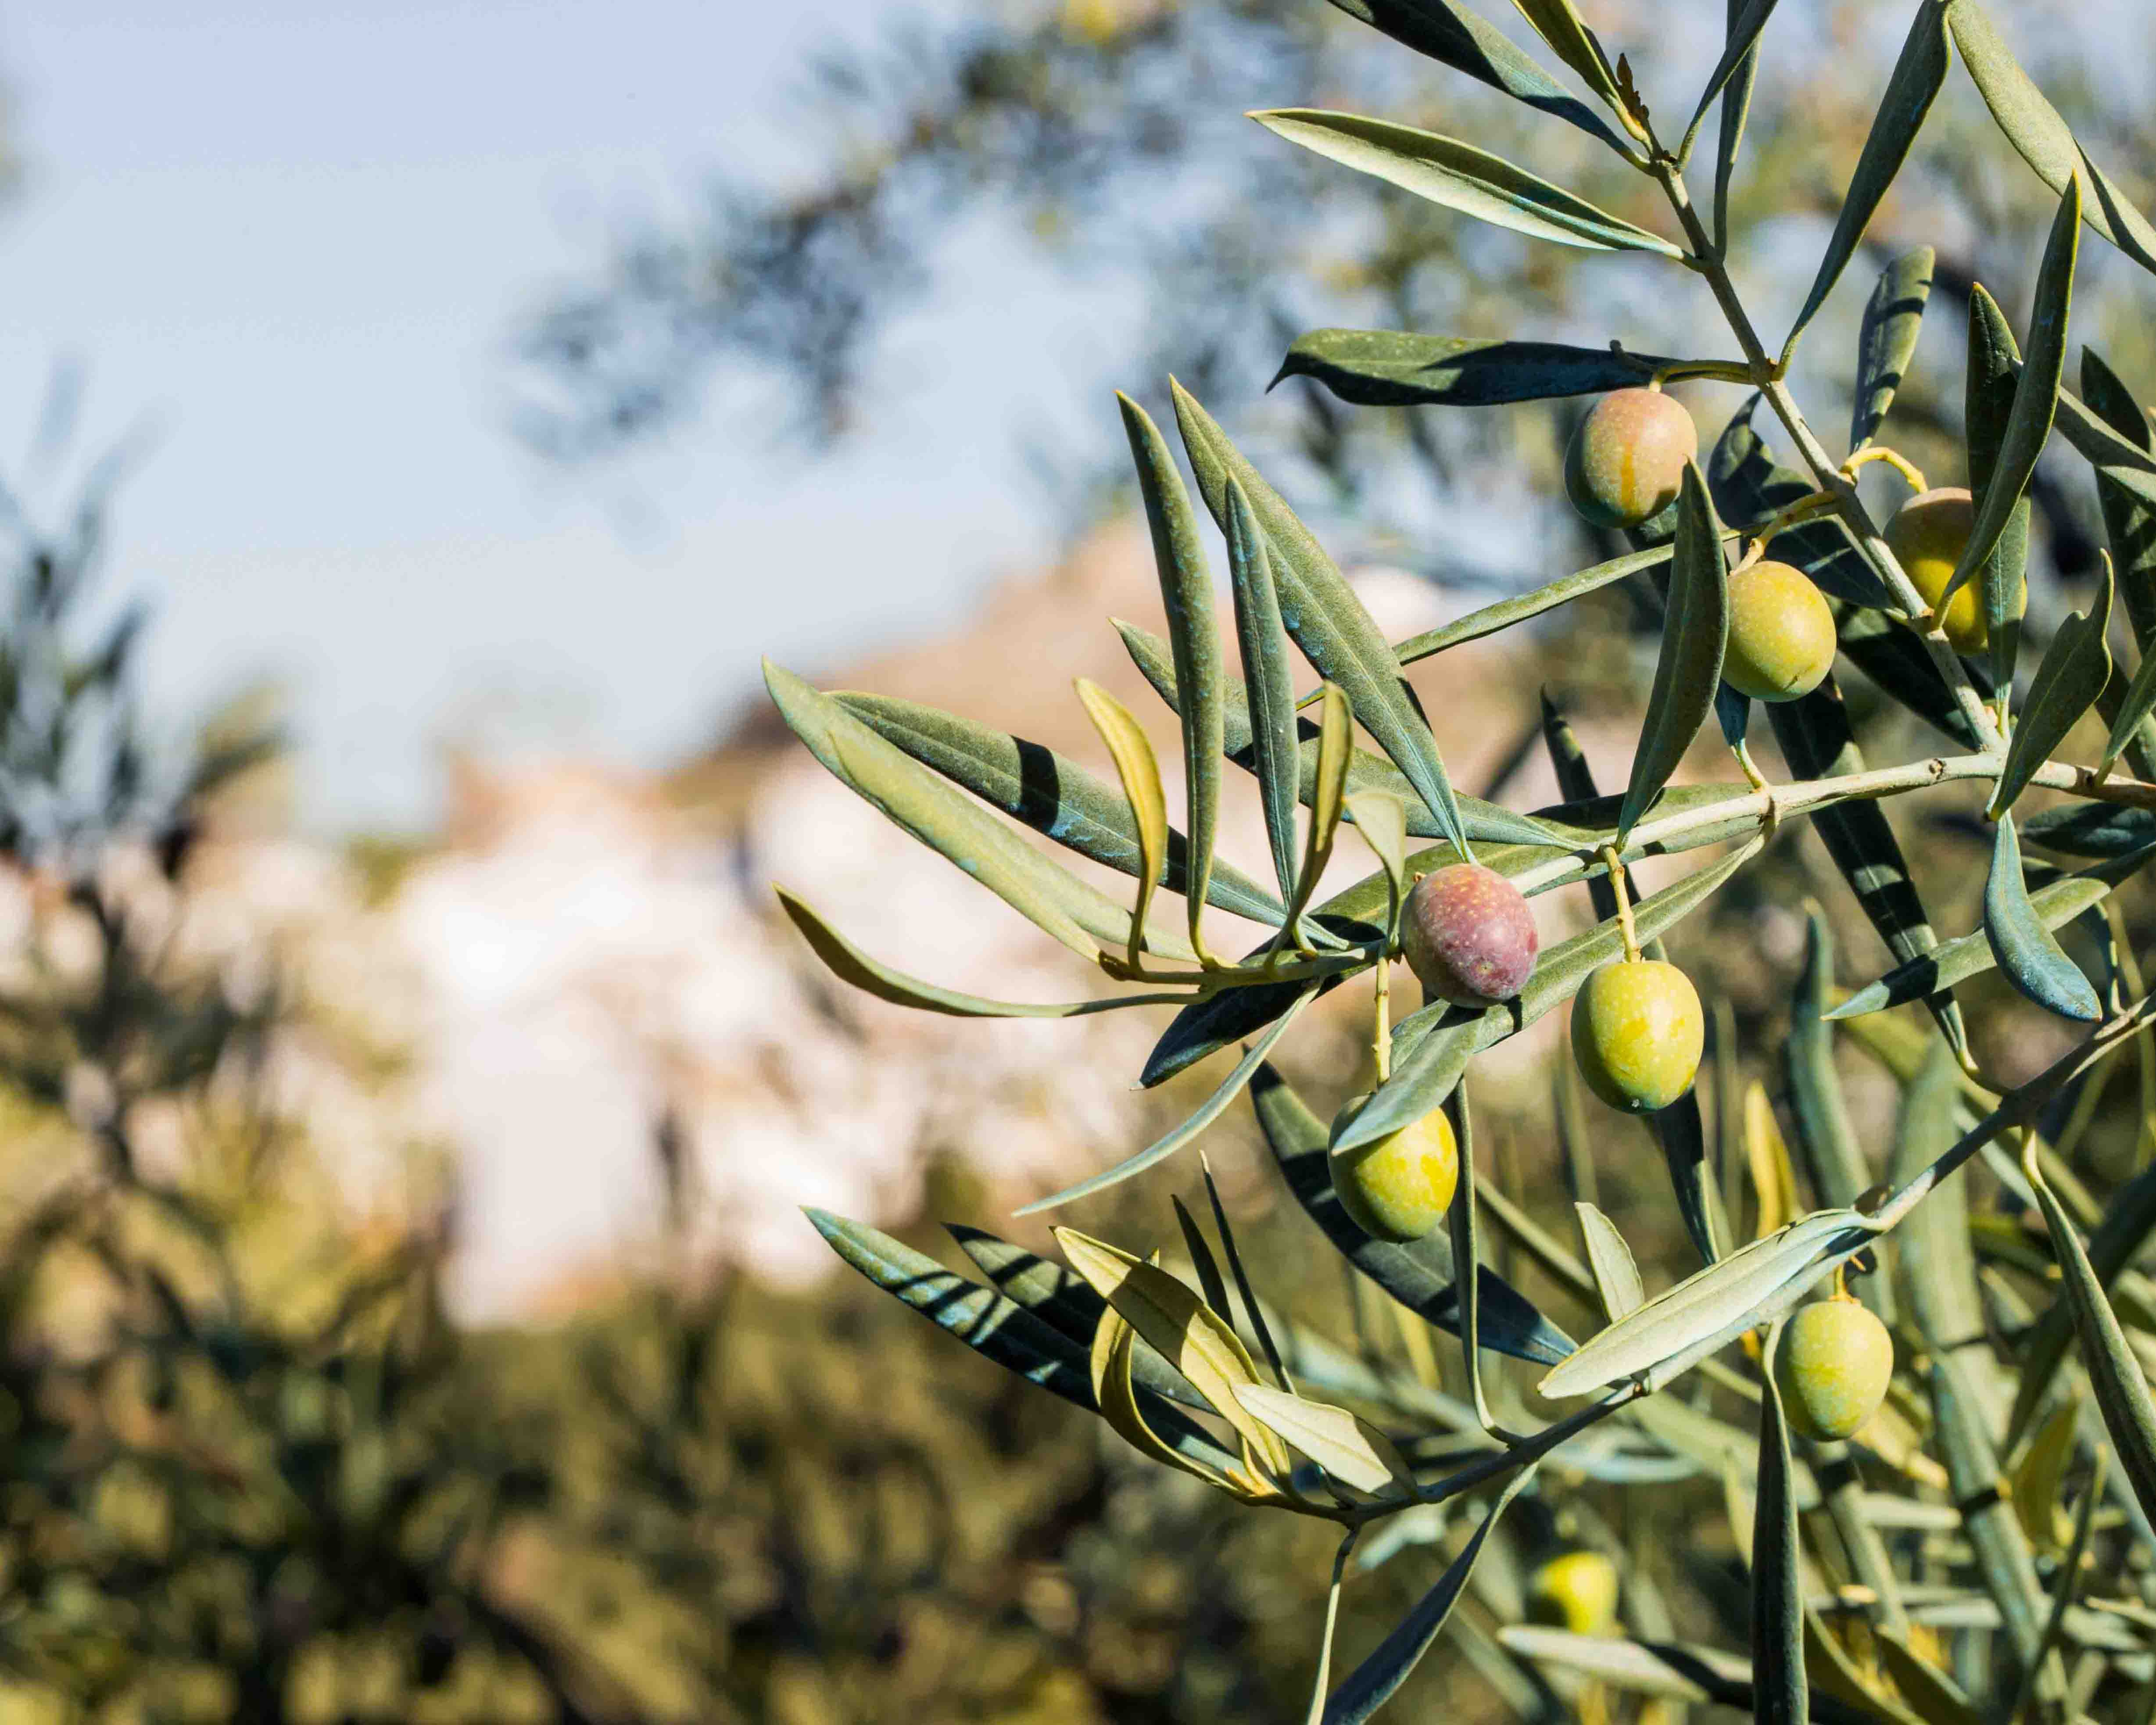 1,000 trees and shrubs being planted in Mellieħa